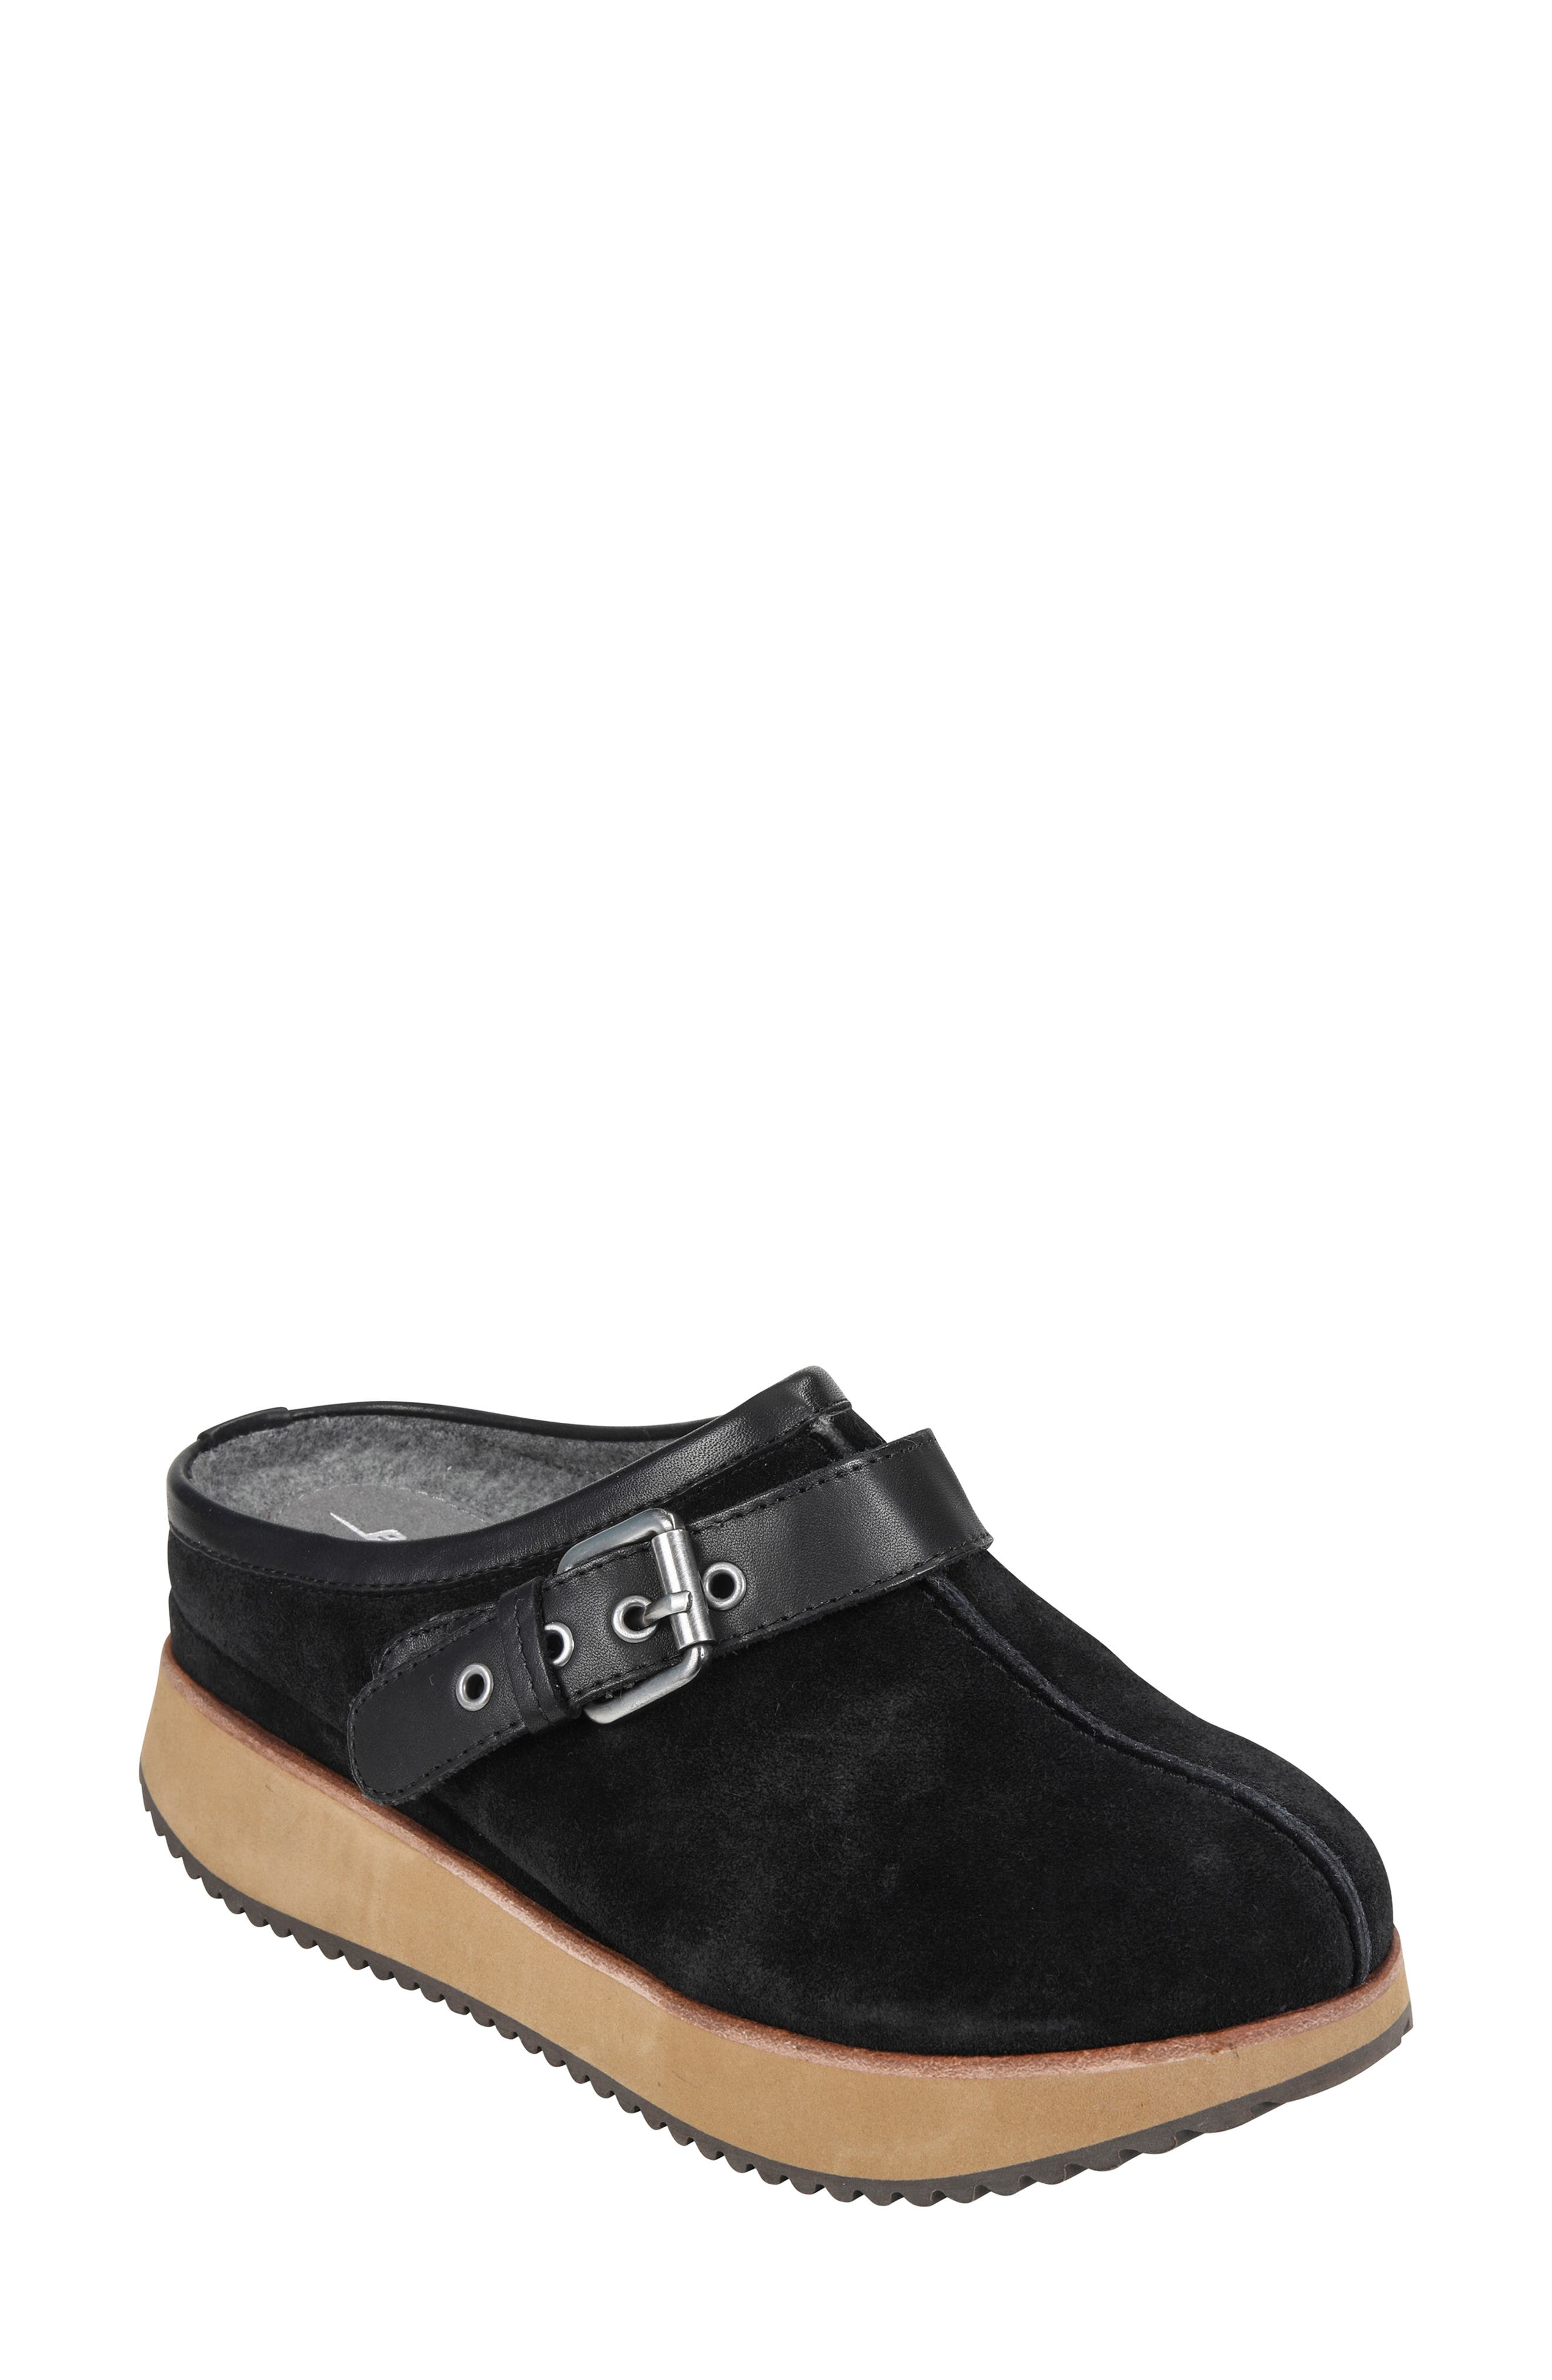 Lyra Buckle Clog,                         Main,                         color, BLACK SUEDE